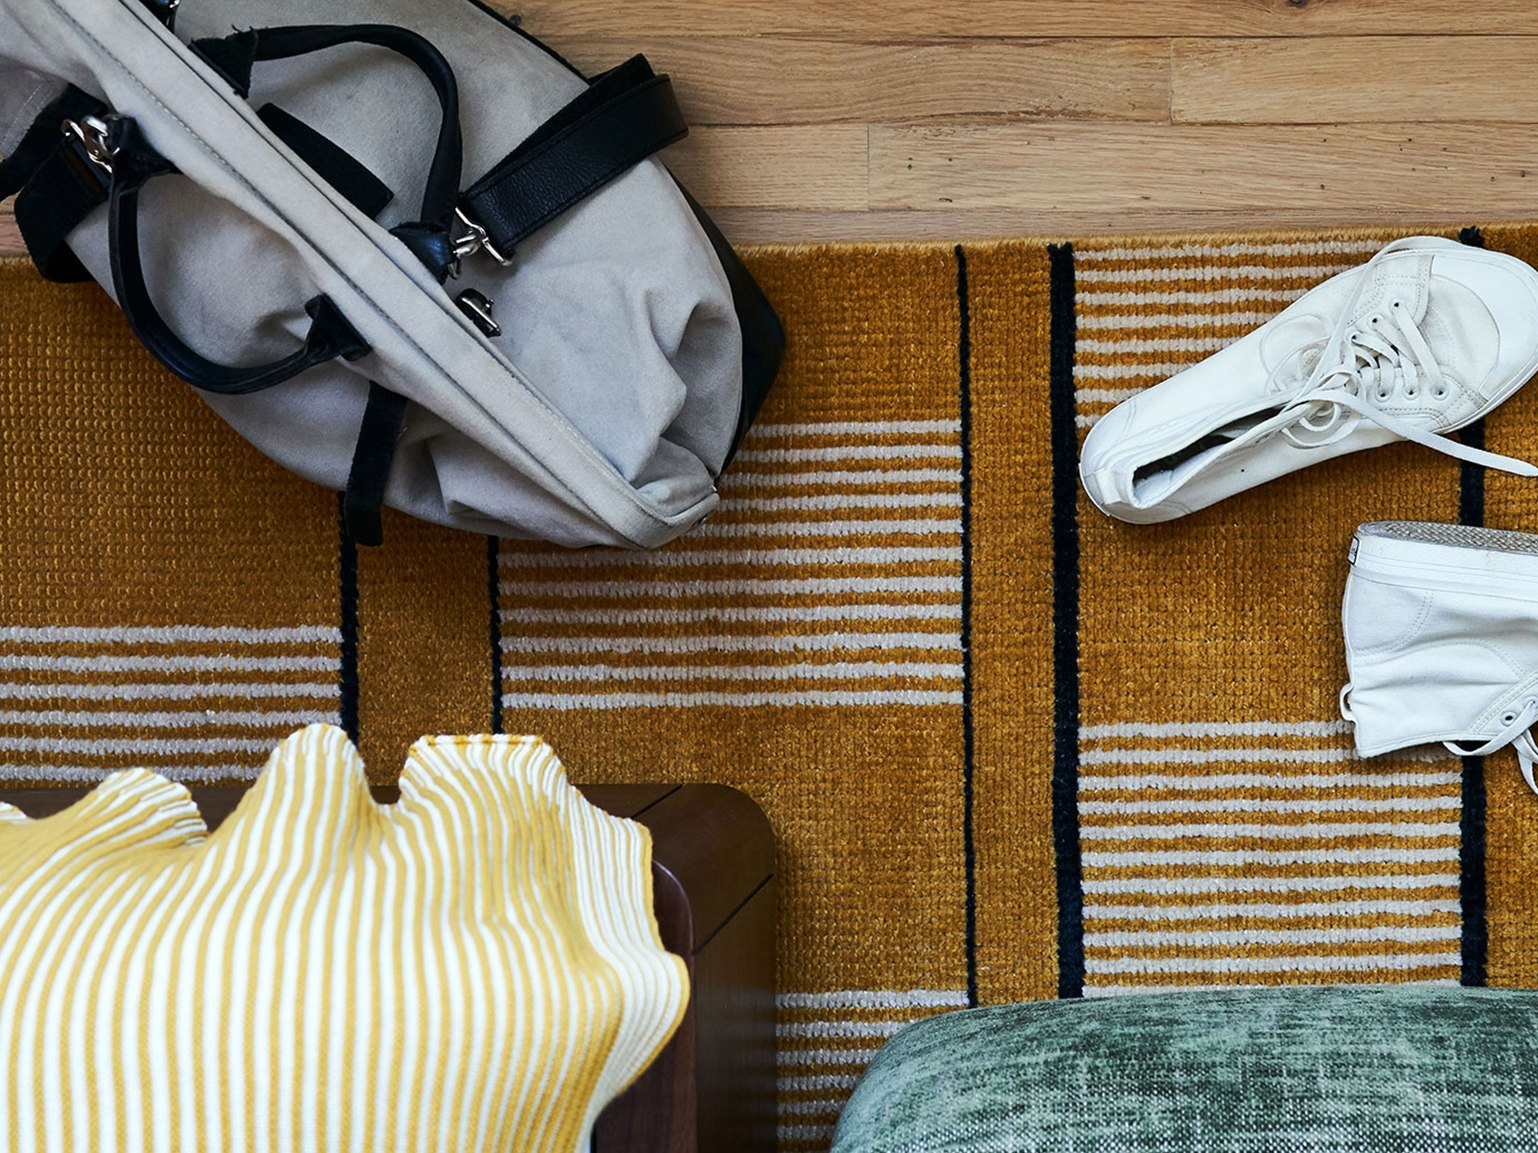 An overnight bag and pair of trainers on a bedroom floor.